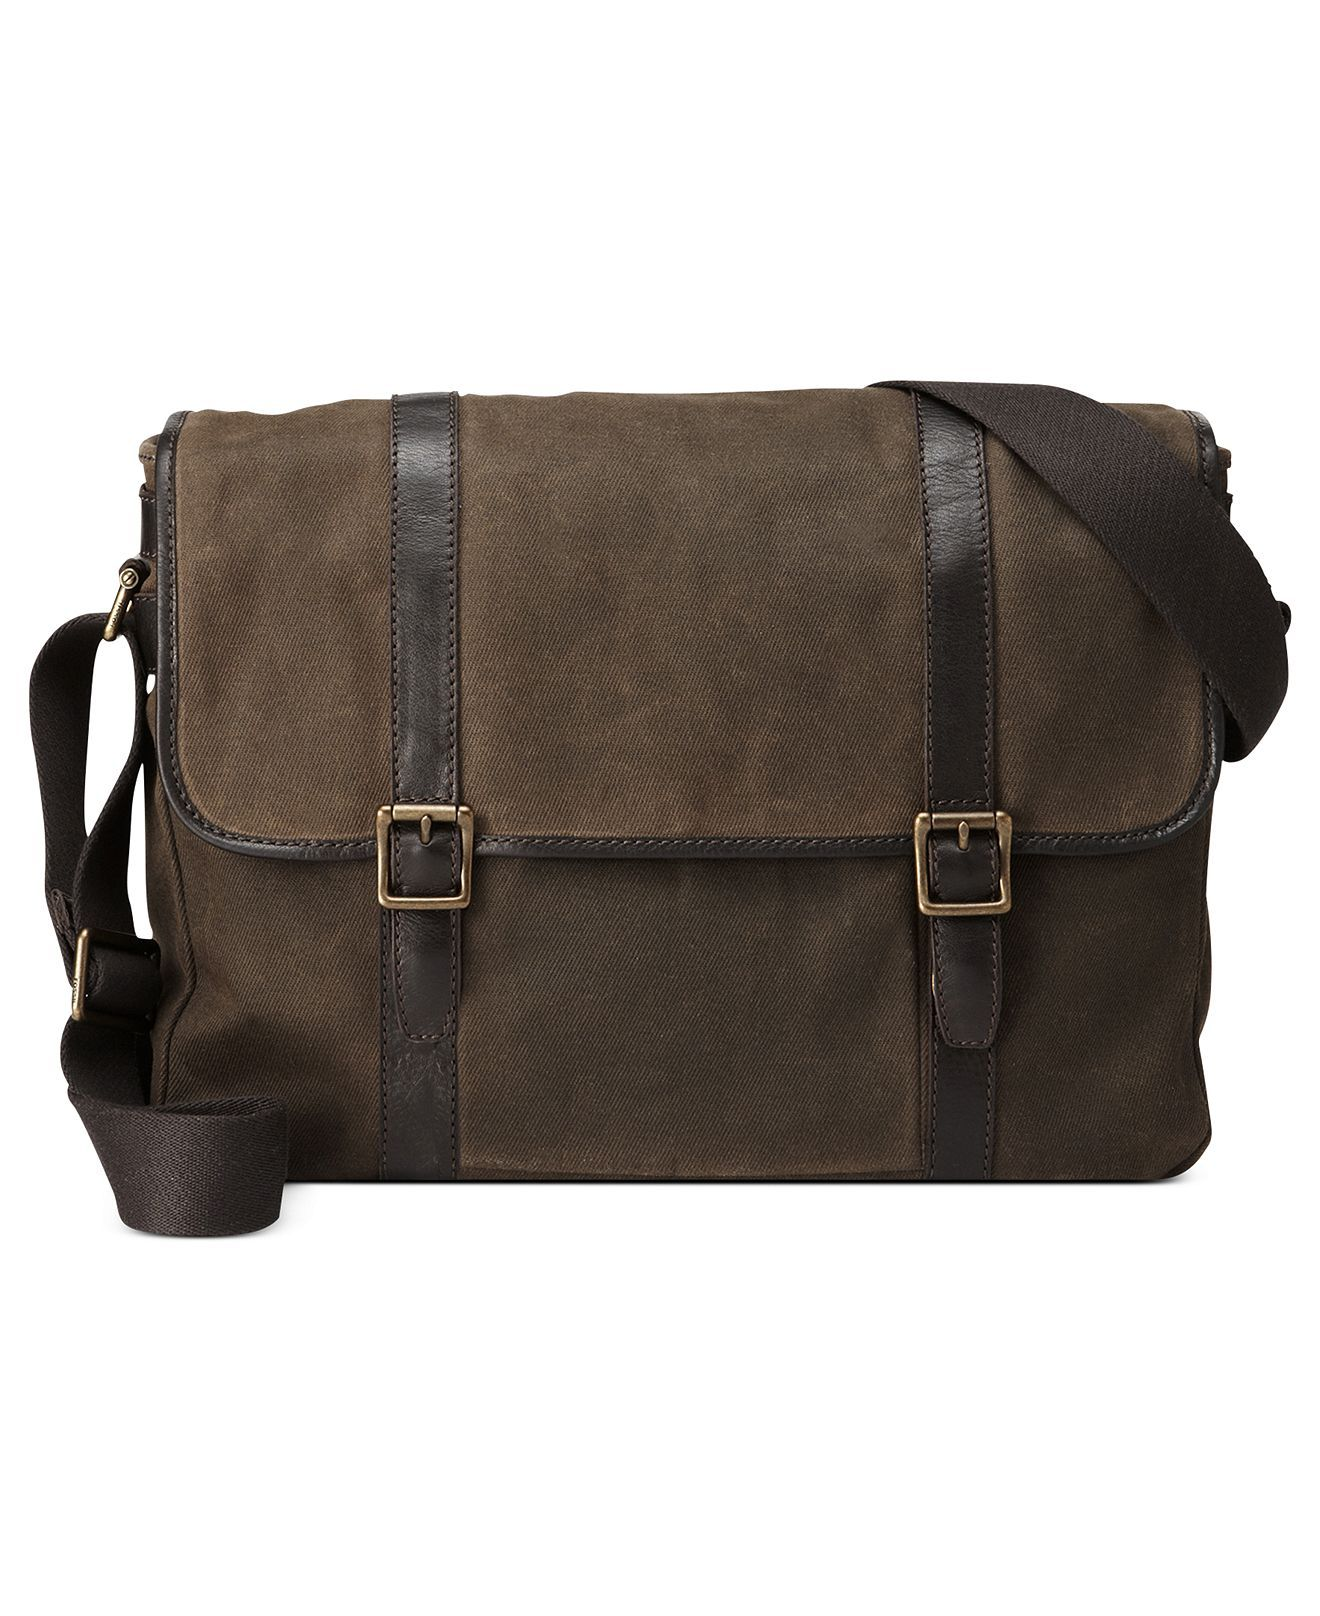 eac4c576d7 Fossil Bags, Estate Calvary Twill East West Messenger Bag - Bags &  Backpacks - Men - Macy's